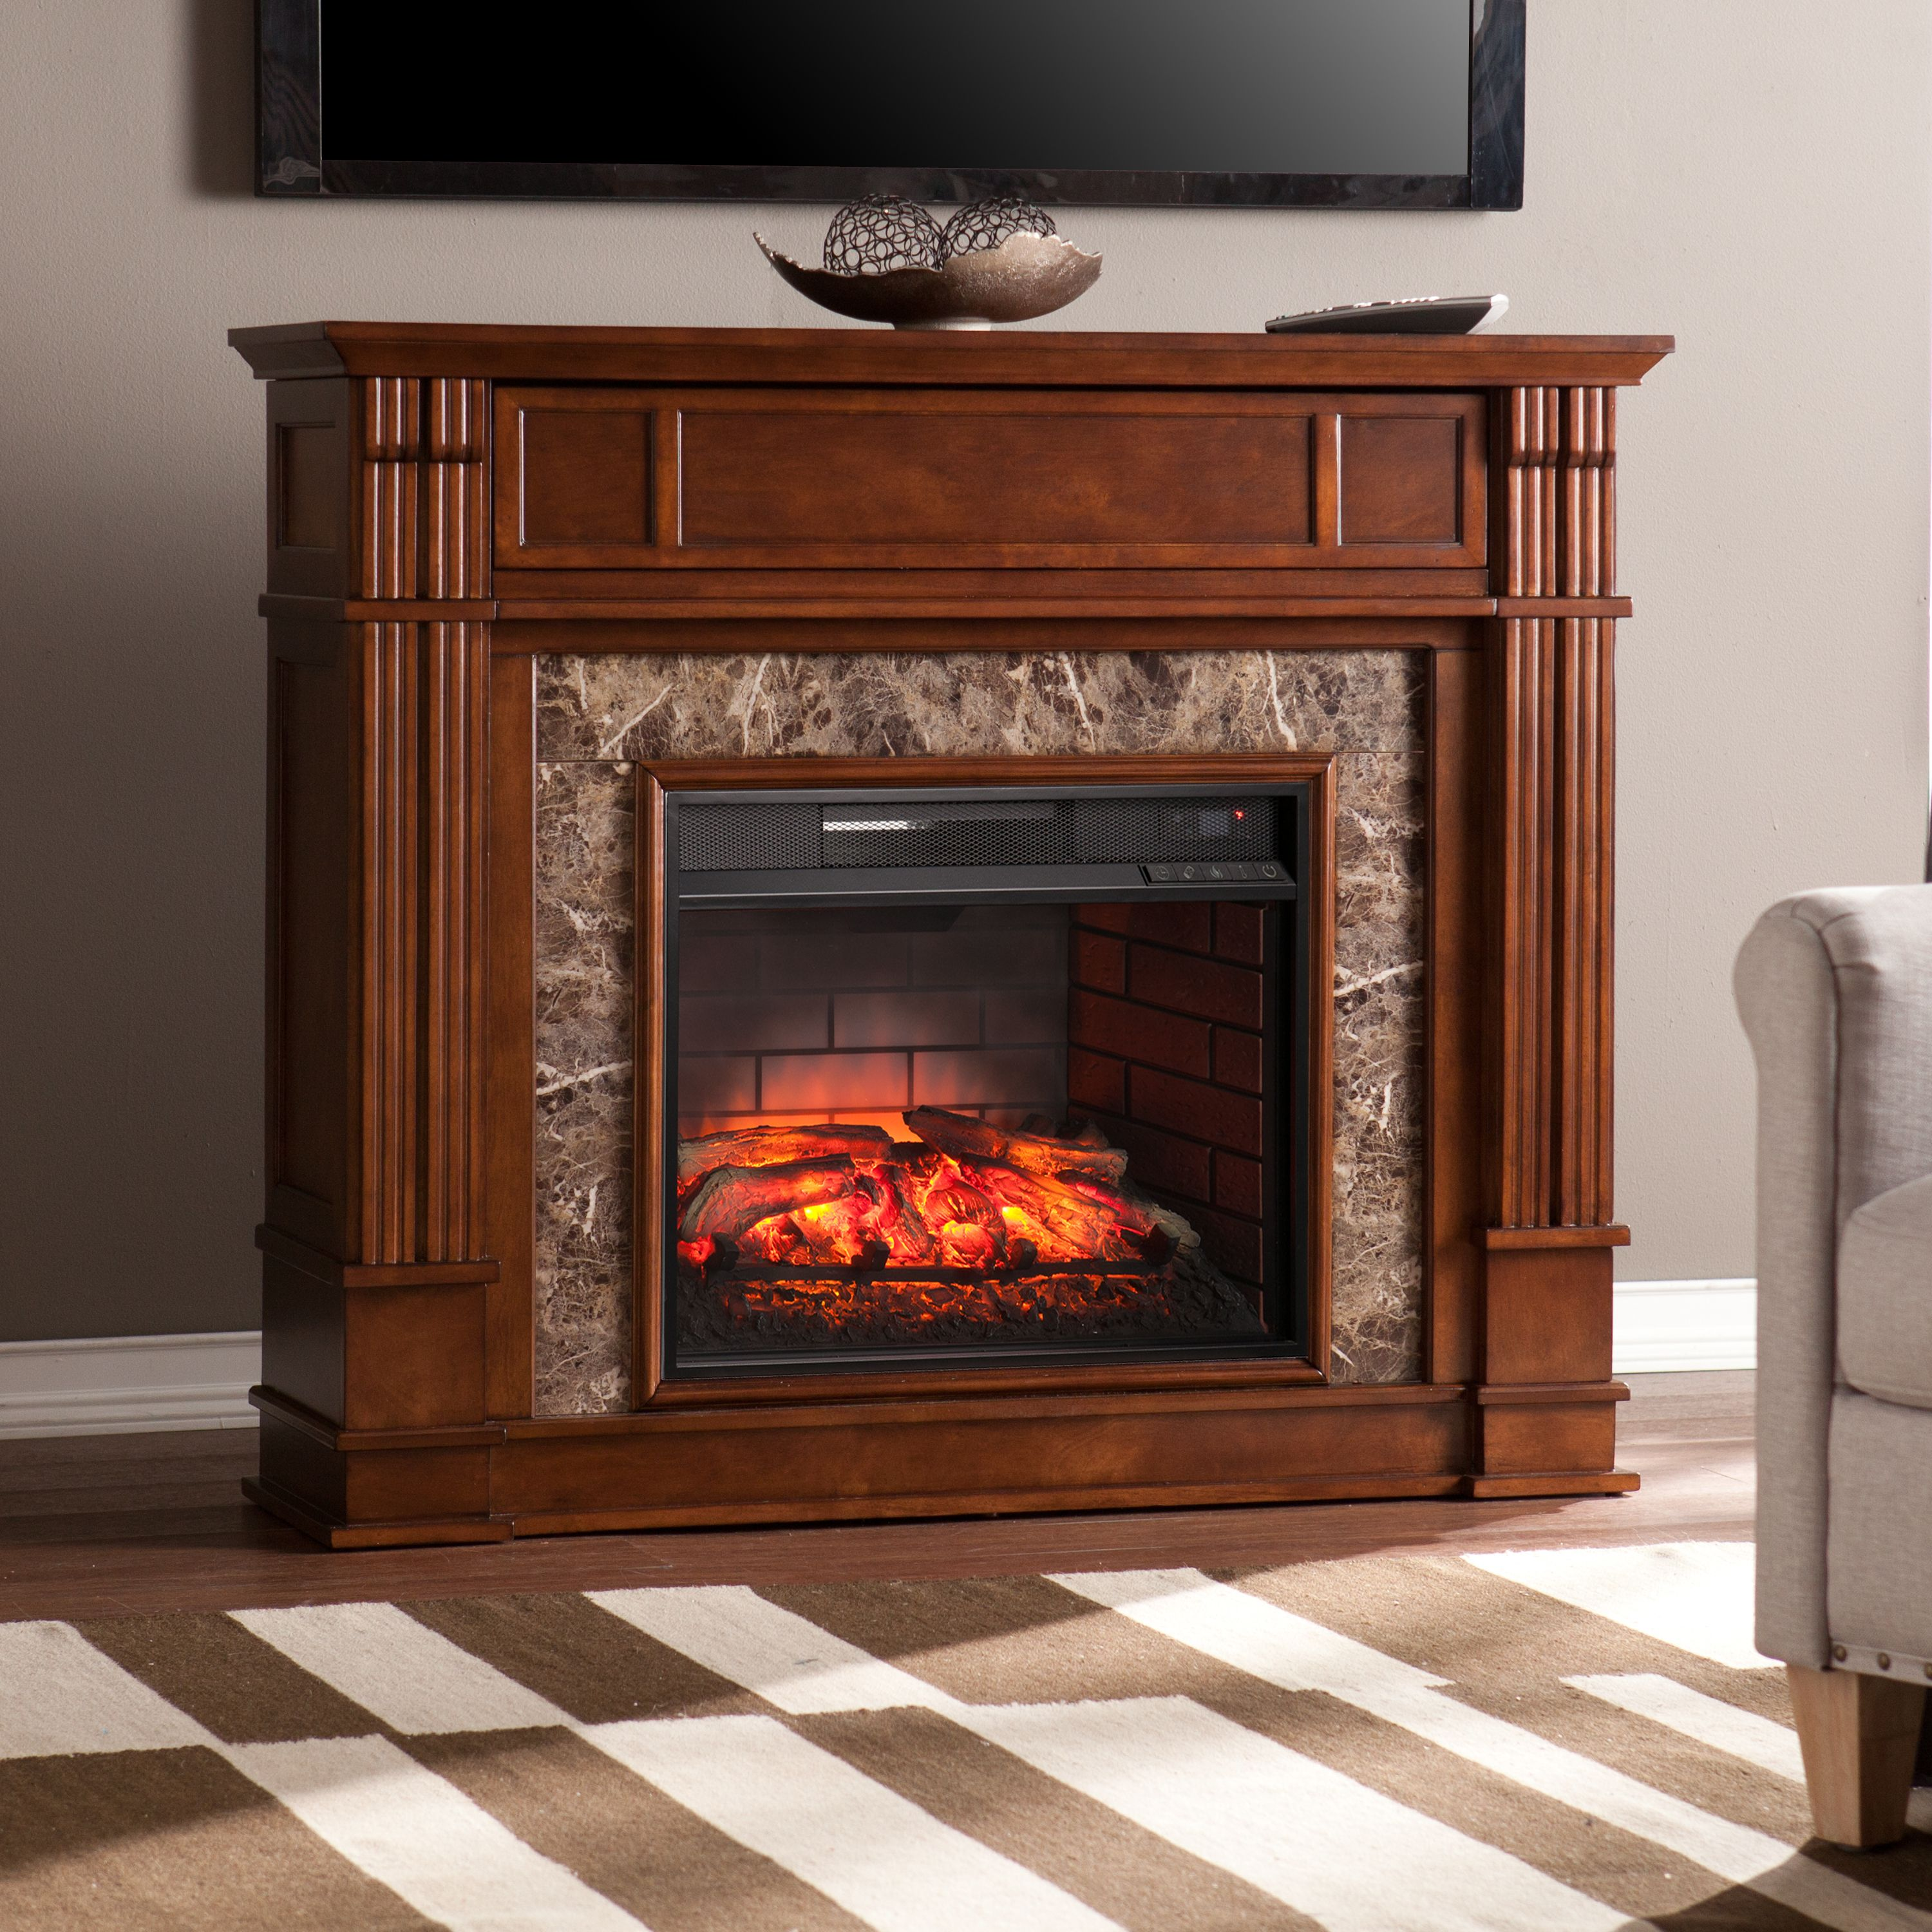 "Perifyre Media Infrared Fireplace Console with Faux Granite, for TV's up to 46"", Whiskey Maple"